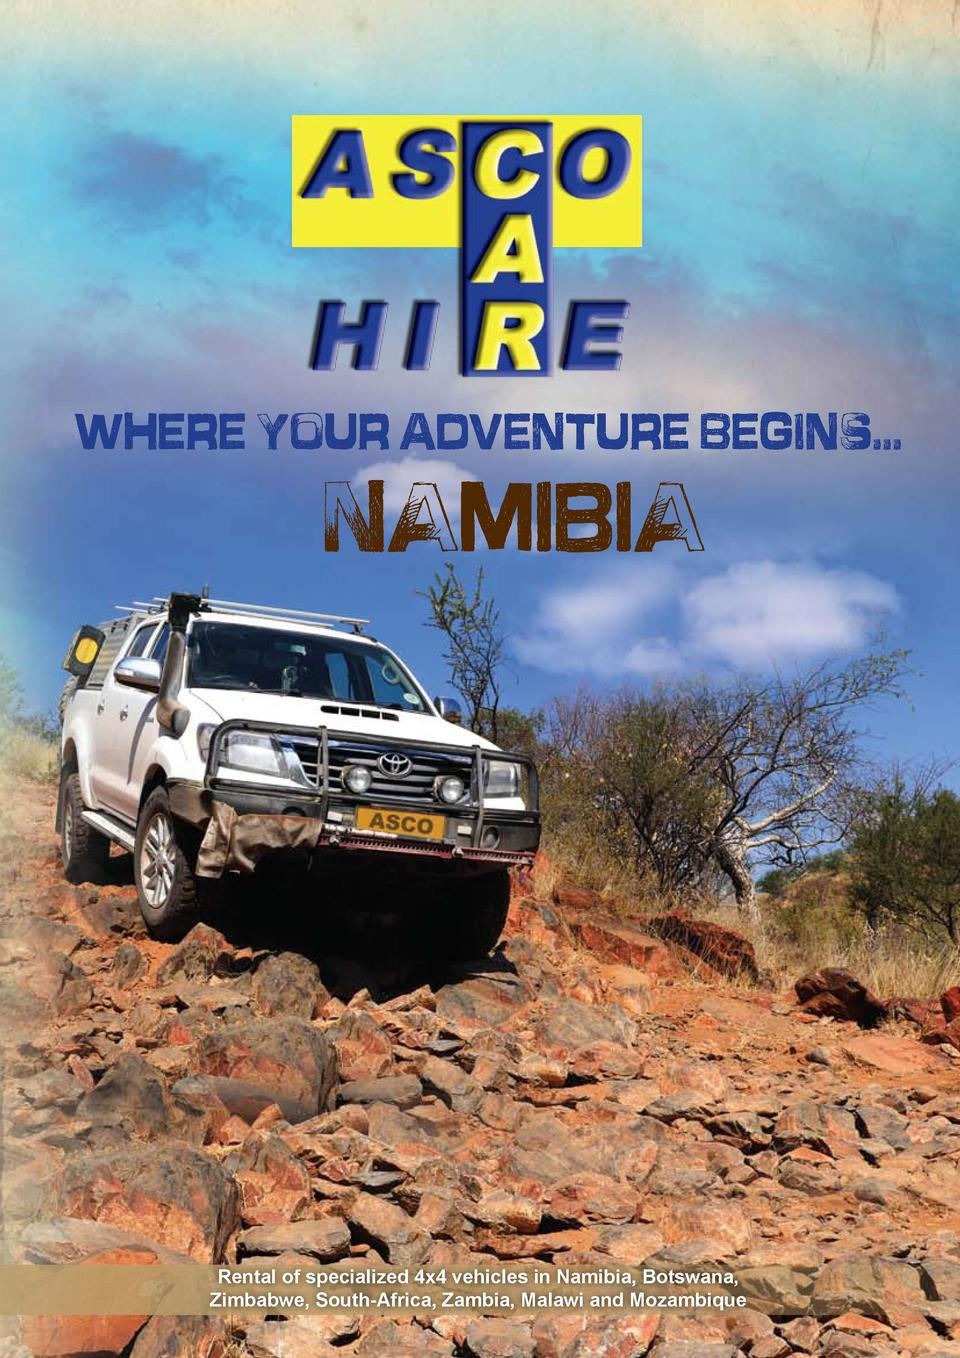 Where your adventure begins...  NAMIBIA  Rental of specialized 4x4 vehicles in Namibia, Botswana, Zimbabwe, South-Africa, ...